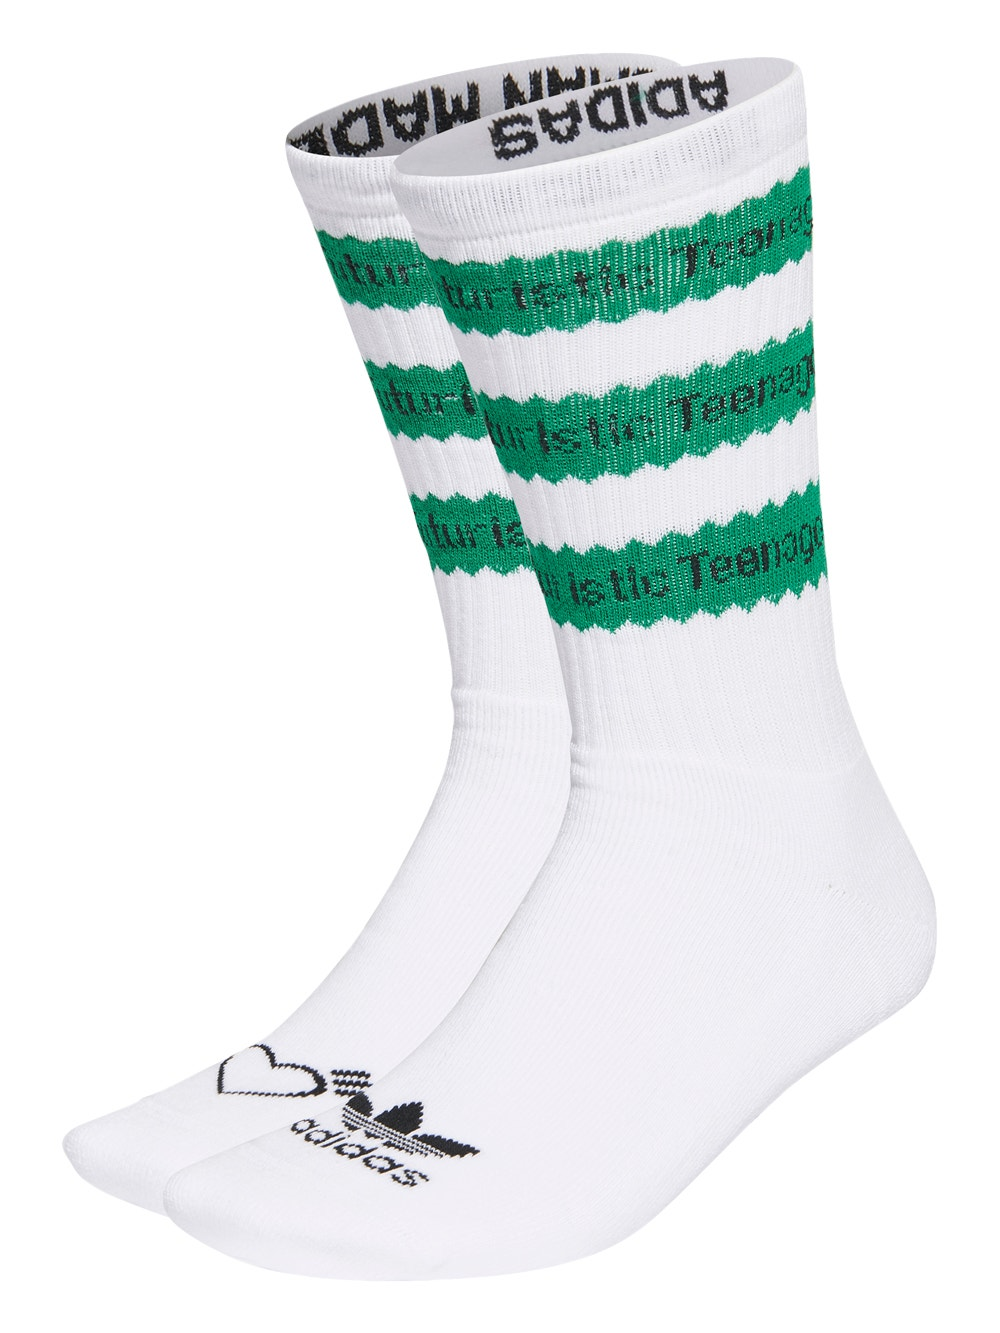 White & Green Adidas X Human Made Striped Socks